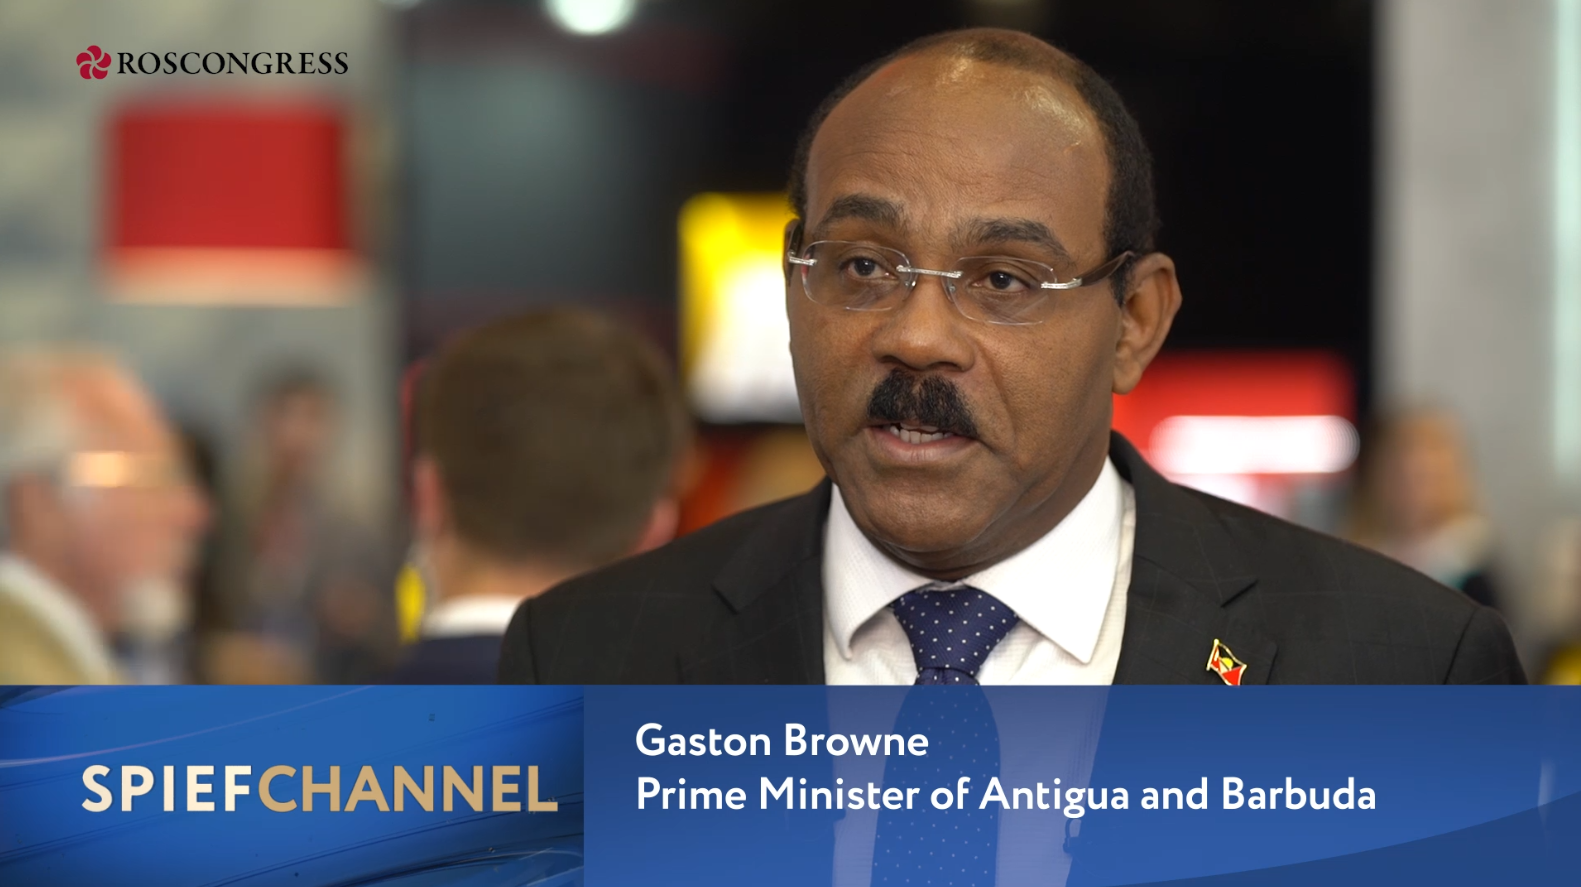 Gaston Browne, Prime Minister of Antigua and Barbuda